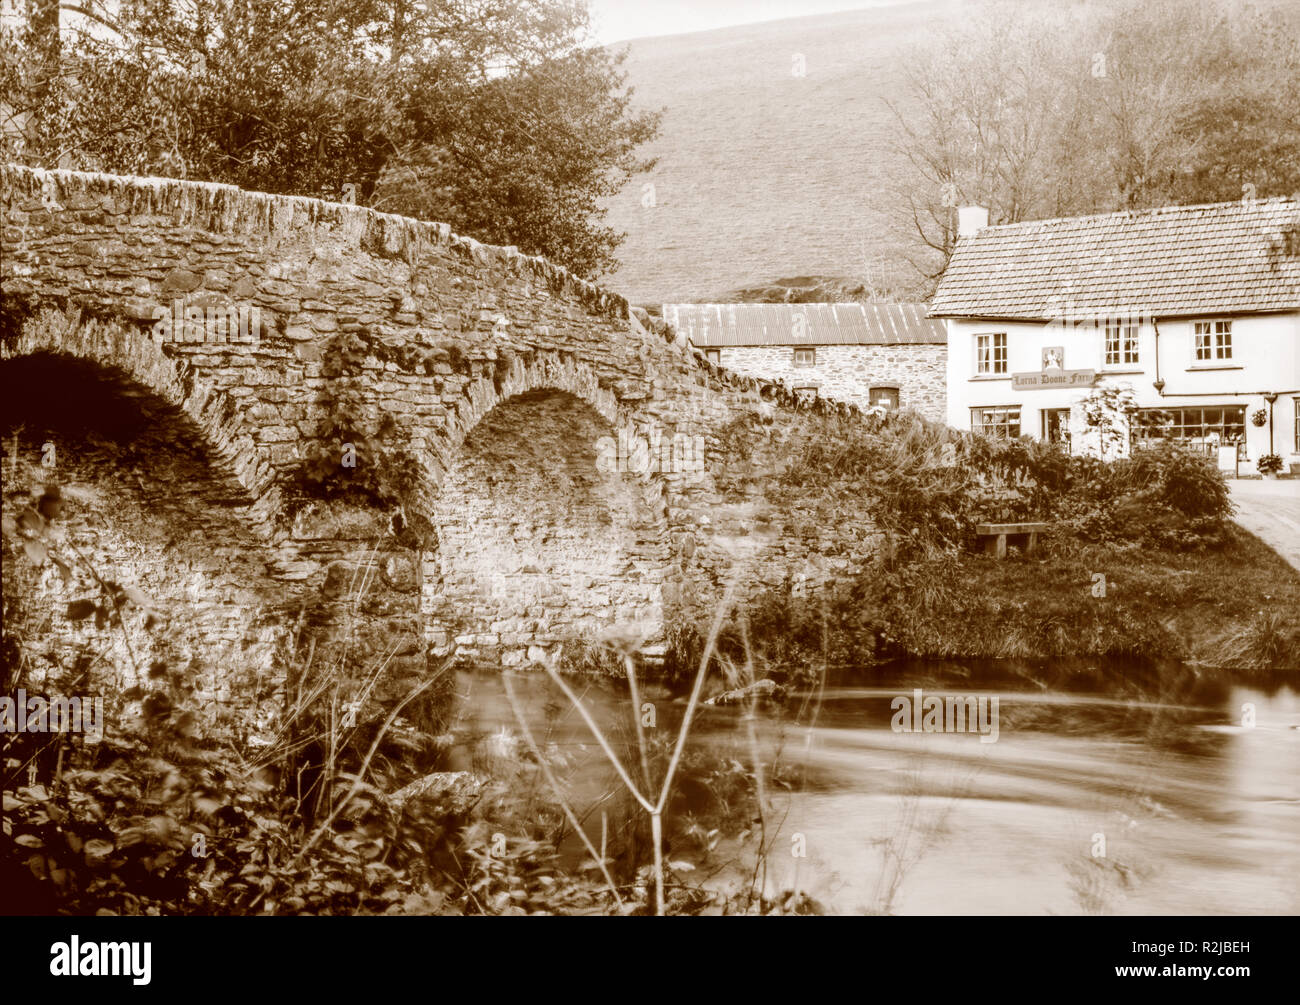 A sepia toned photograph taken on a paper negative in a 7 x 5 inch plate camera in October 2018 of  Lorna Doone Farm at Malmsmead, Devon, Exmoor - Stock Image